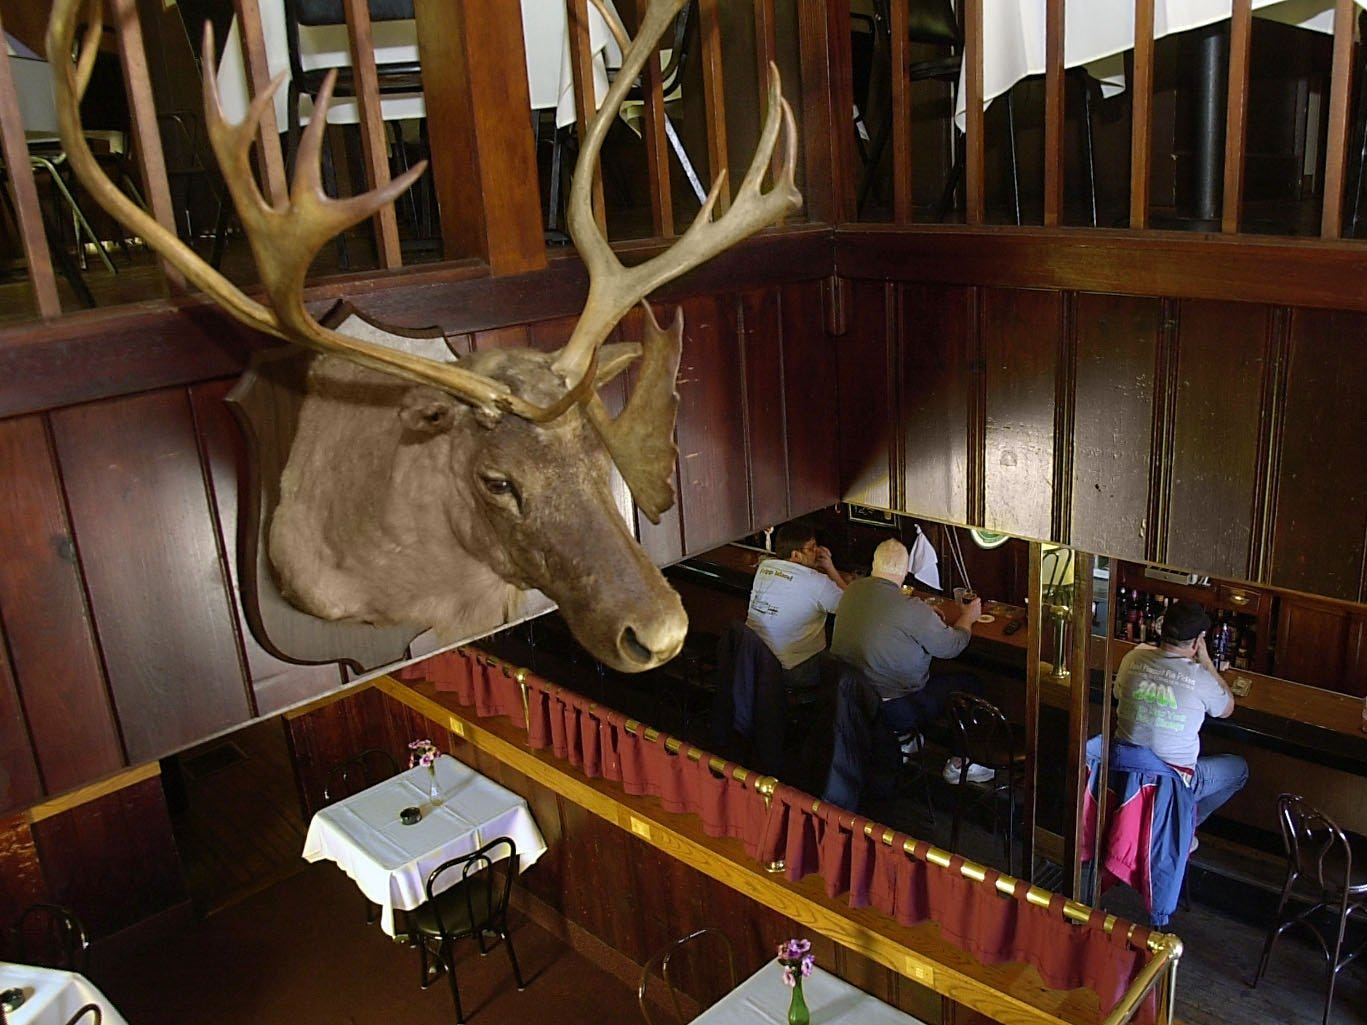 A caribou from Northern Canada faces the entrance at the Reunion Inn across from Seabreeze on Culver Rd, as guests enjoy some beverages in 2002.